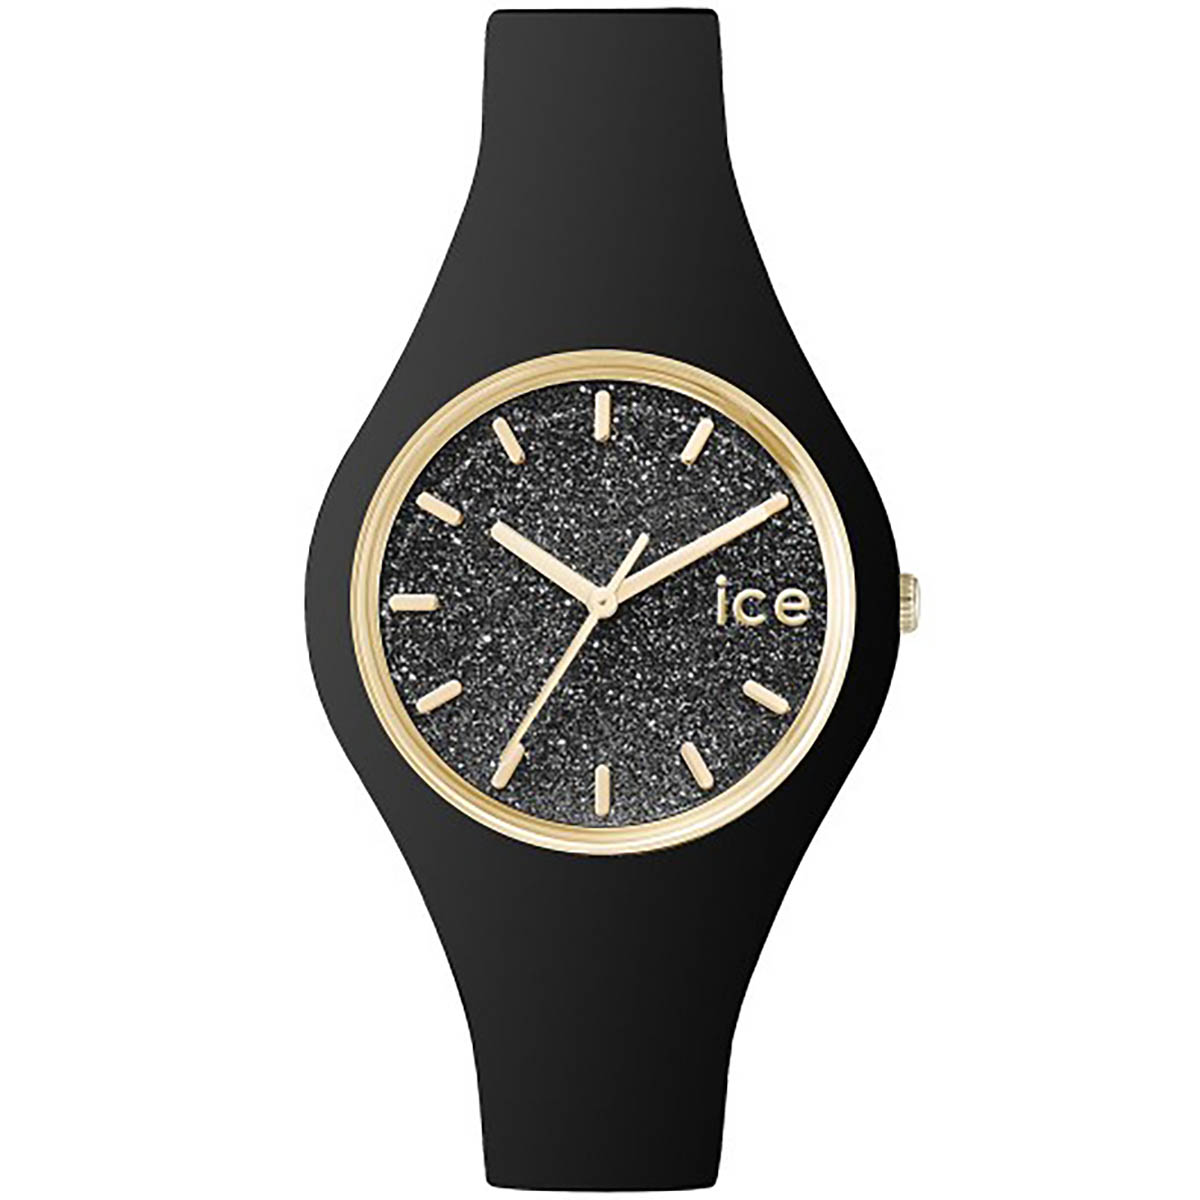 Watch Montre Silicone Femme Ice Ice gt Avec Cleor kZuPiOXT